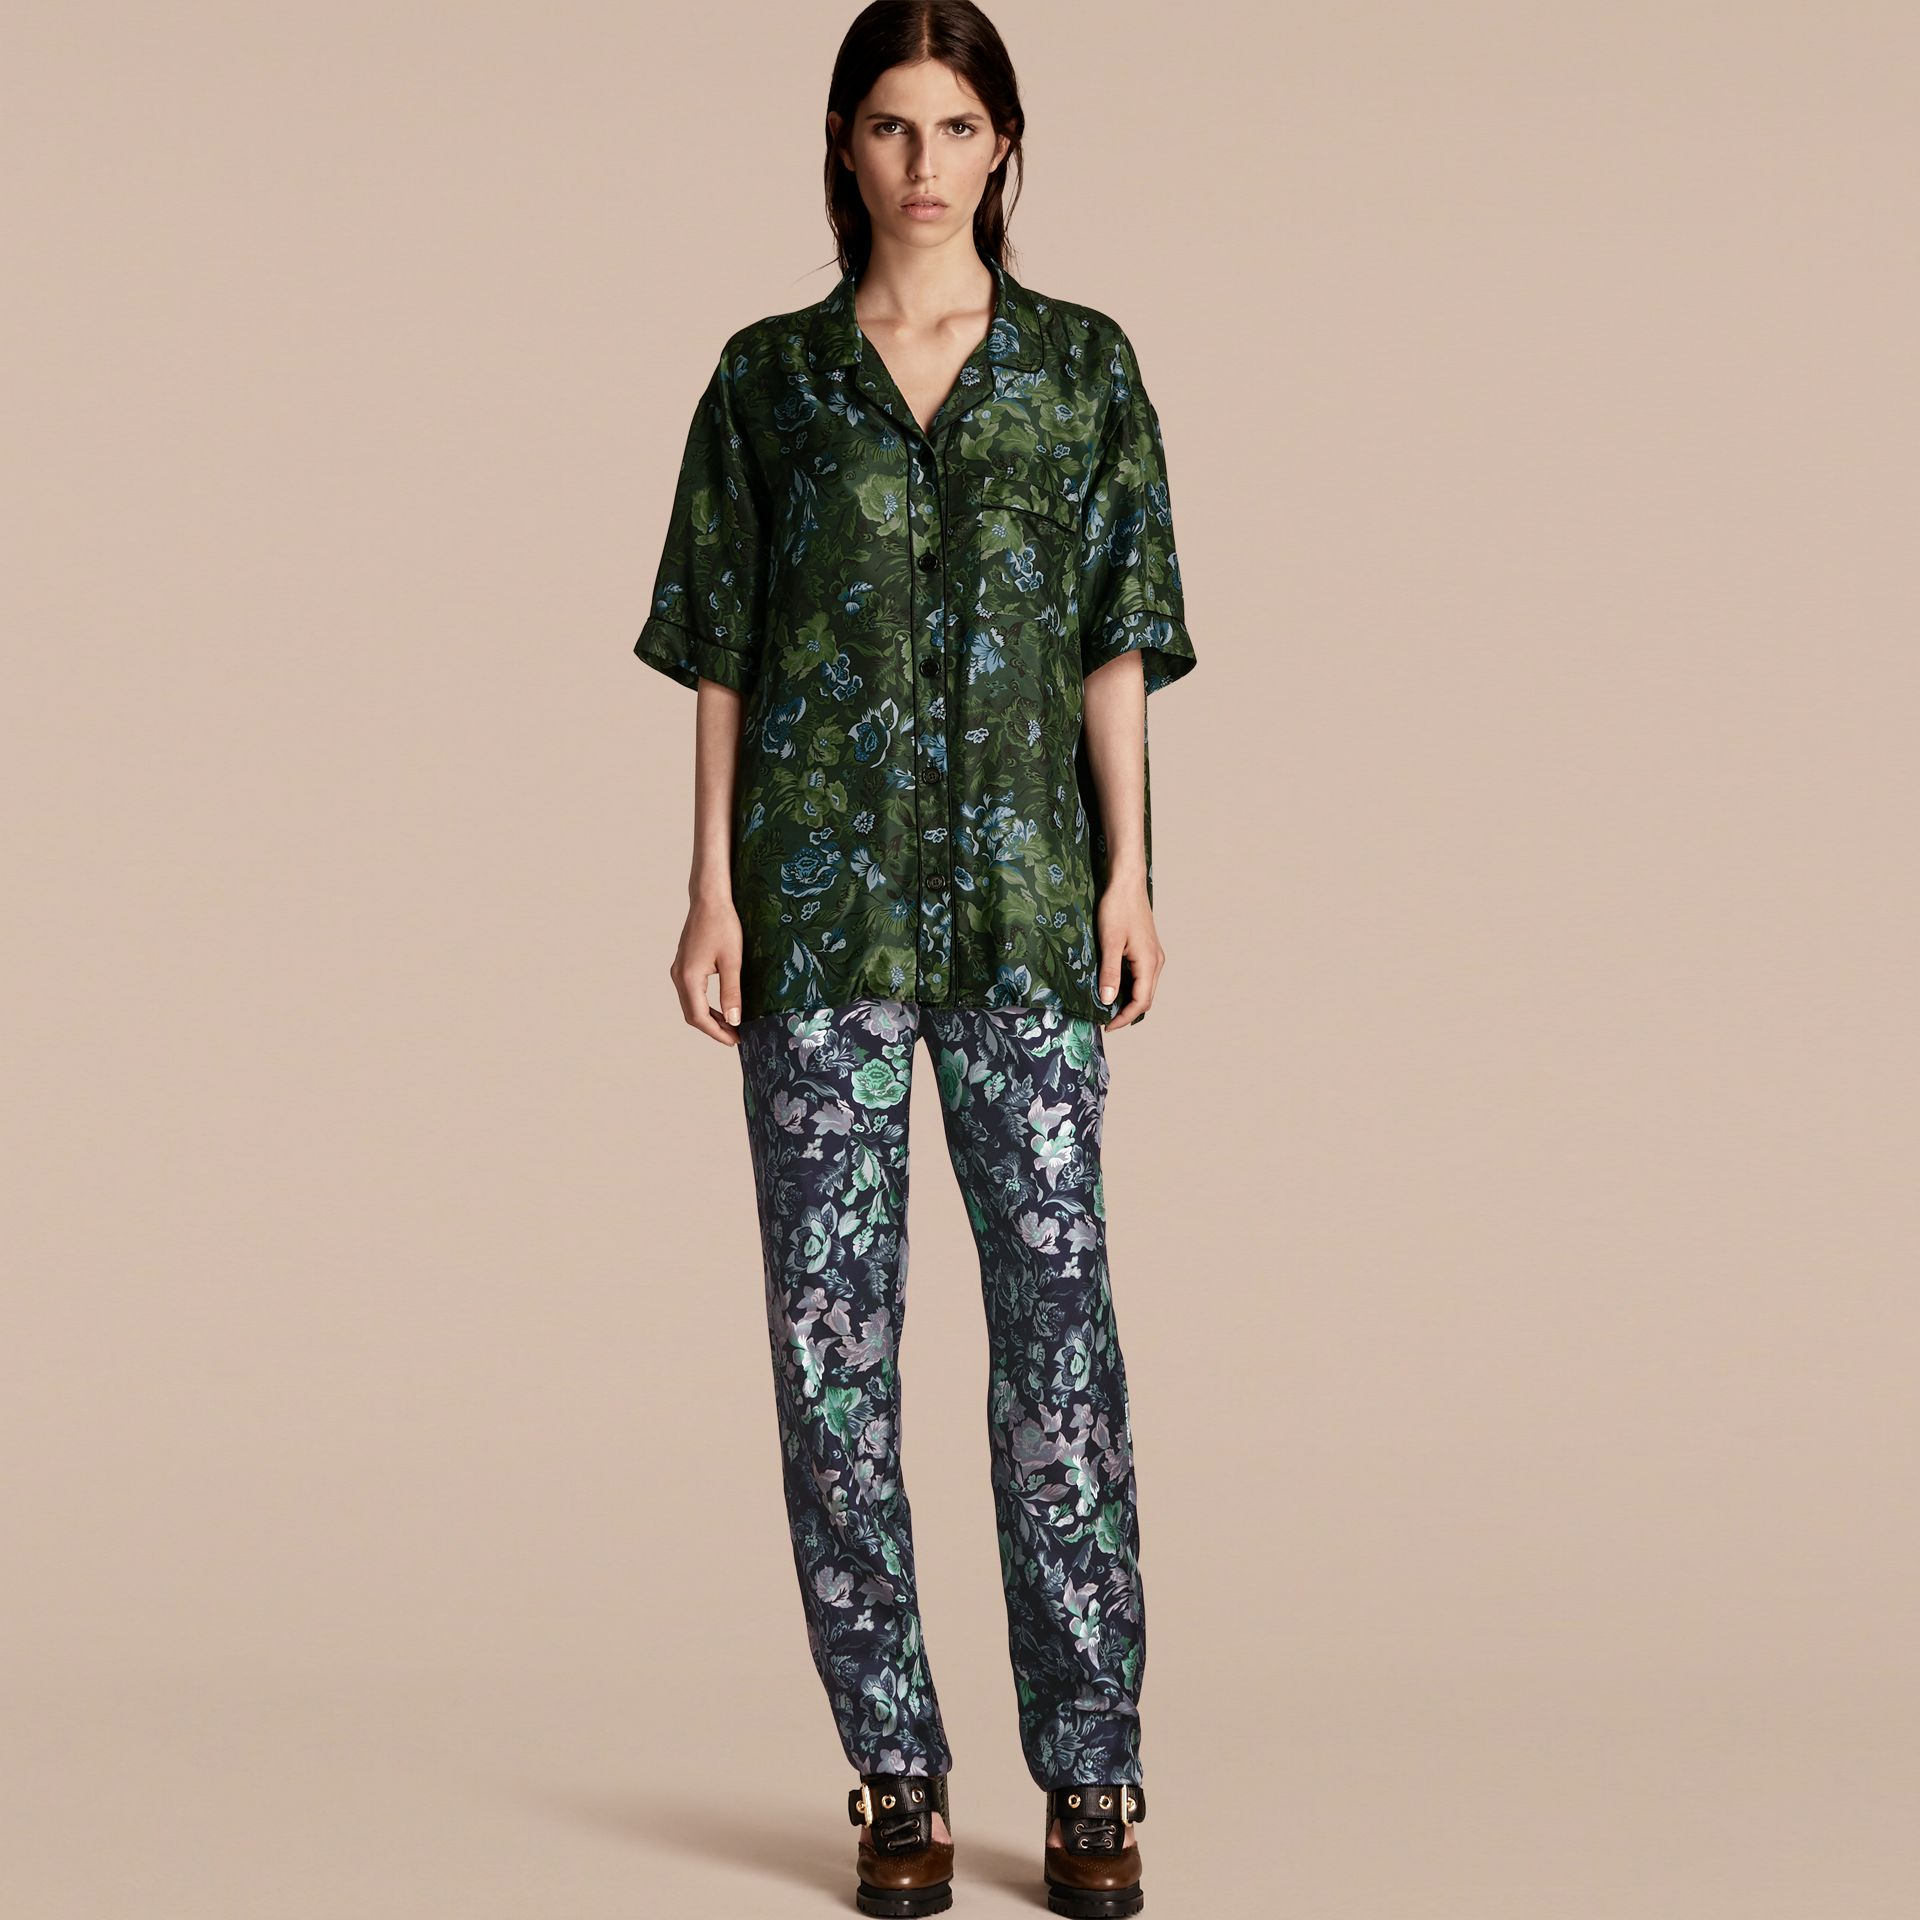 Forest green Short-sleeved Floral Print Silk Pyjama-style Shirt Forest Green - gallery image 6